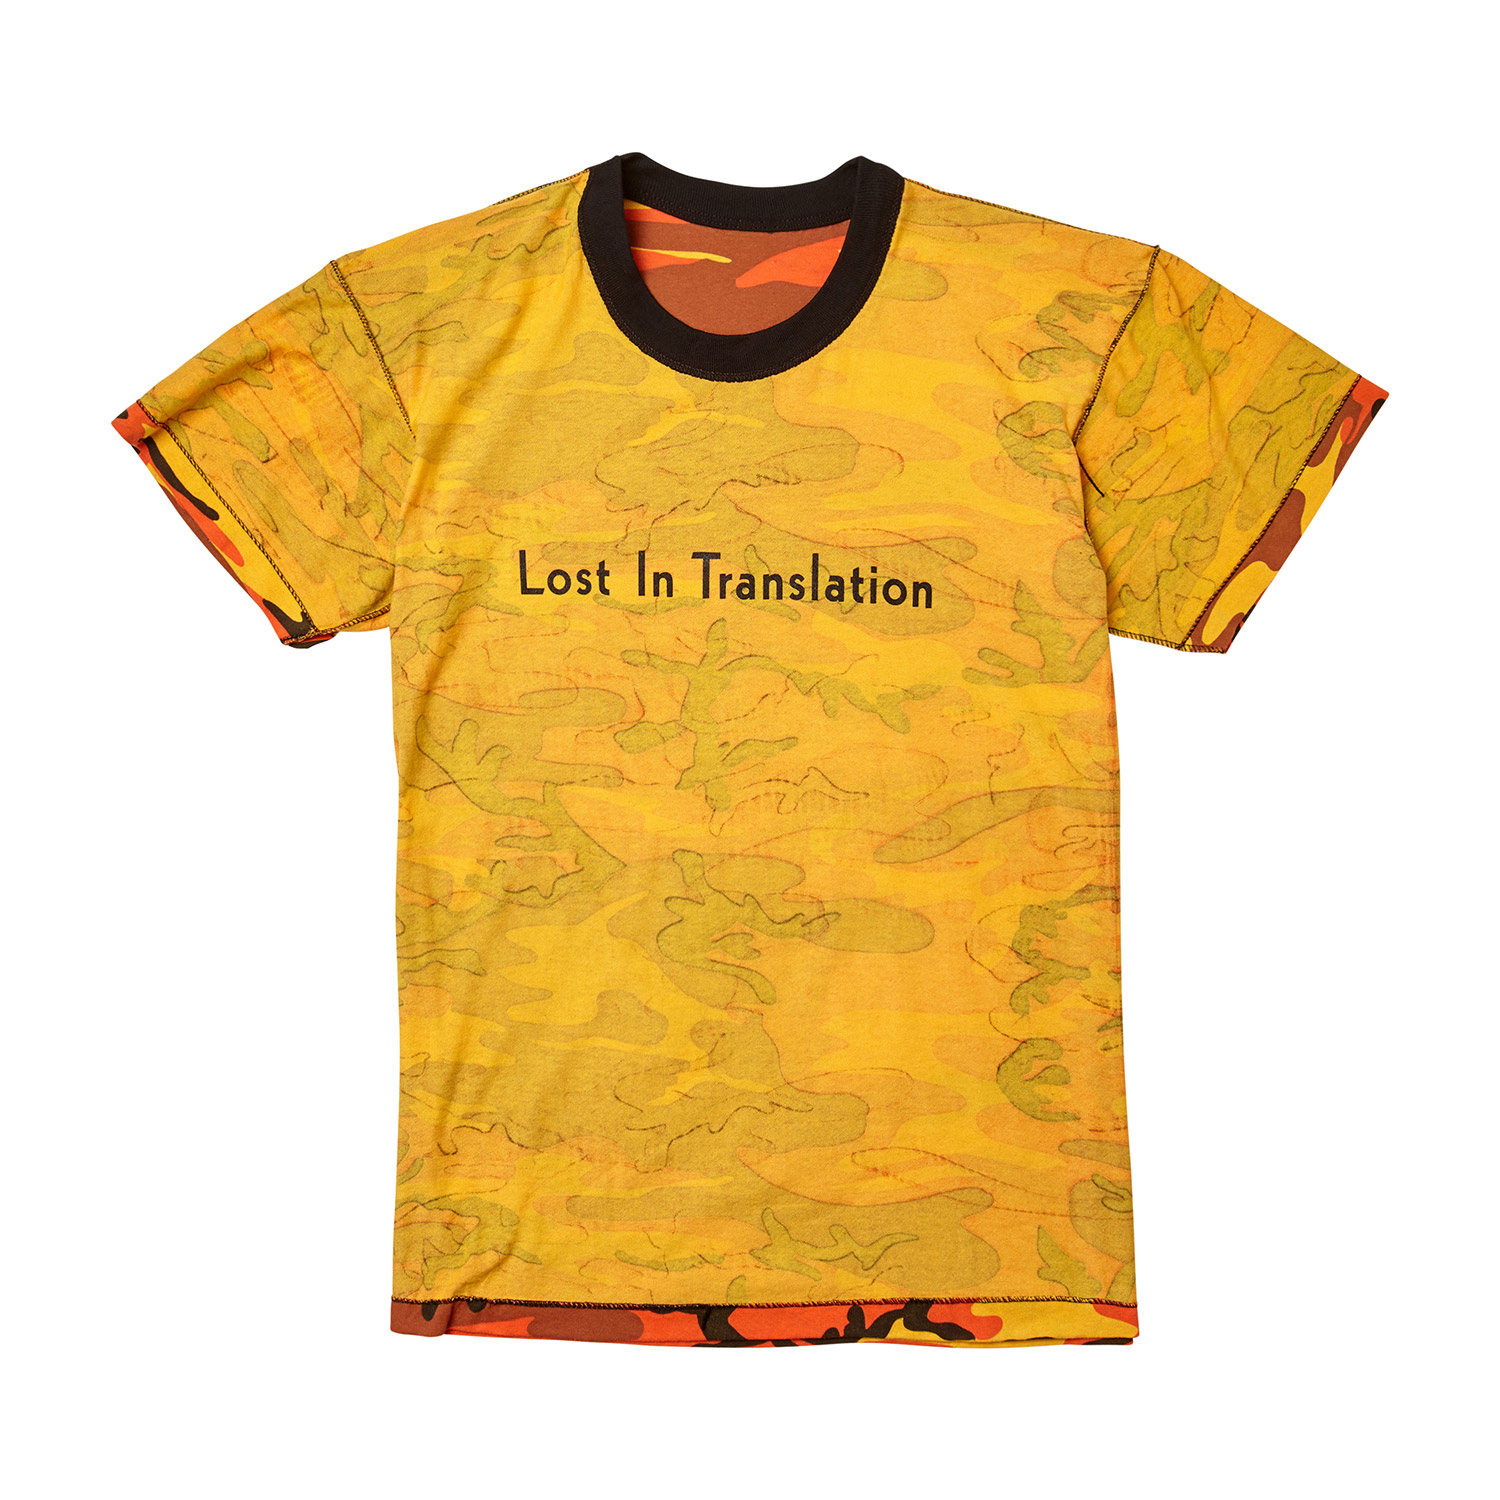 RECORD STORE DAY 2019 - Página 4 LOST-IN-TRANSLATION-T-SHIRT-1